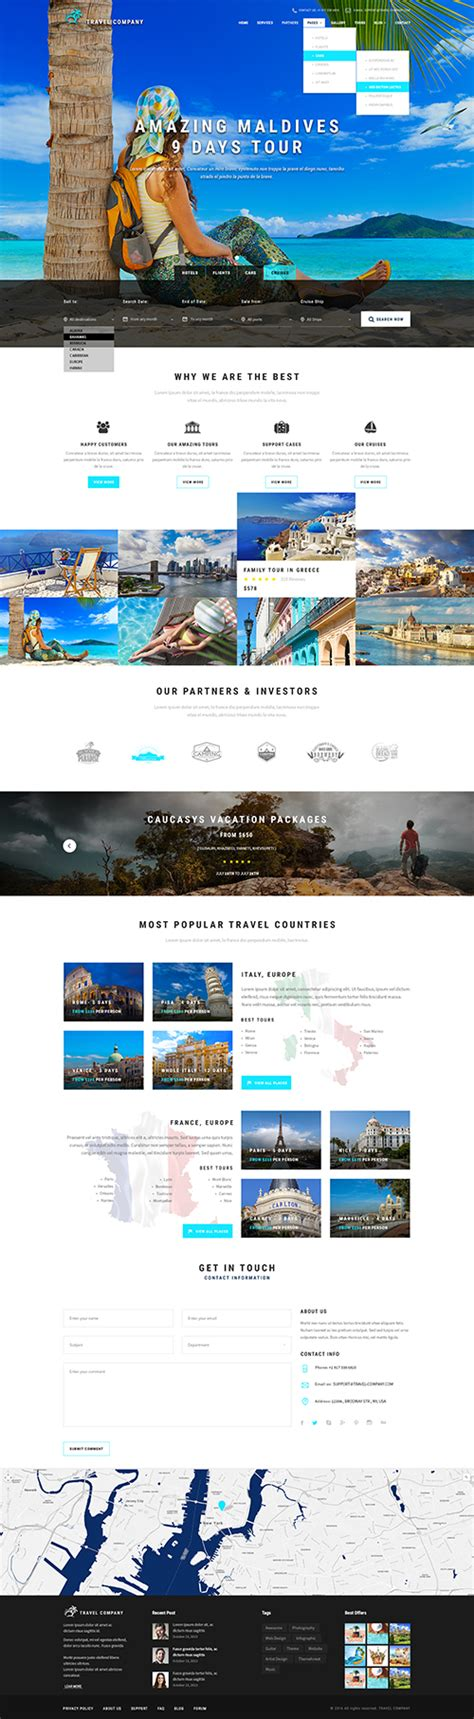 themes bootstrap agency travel agency template tourism website template gridgum